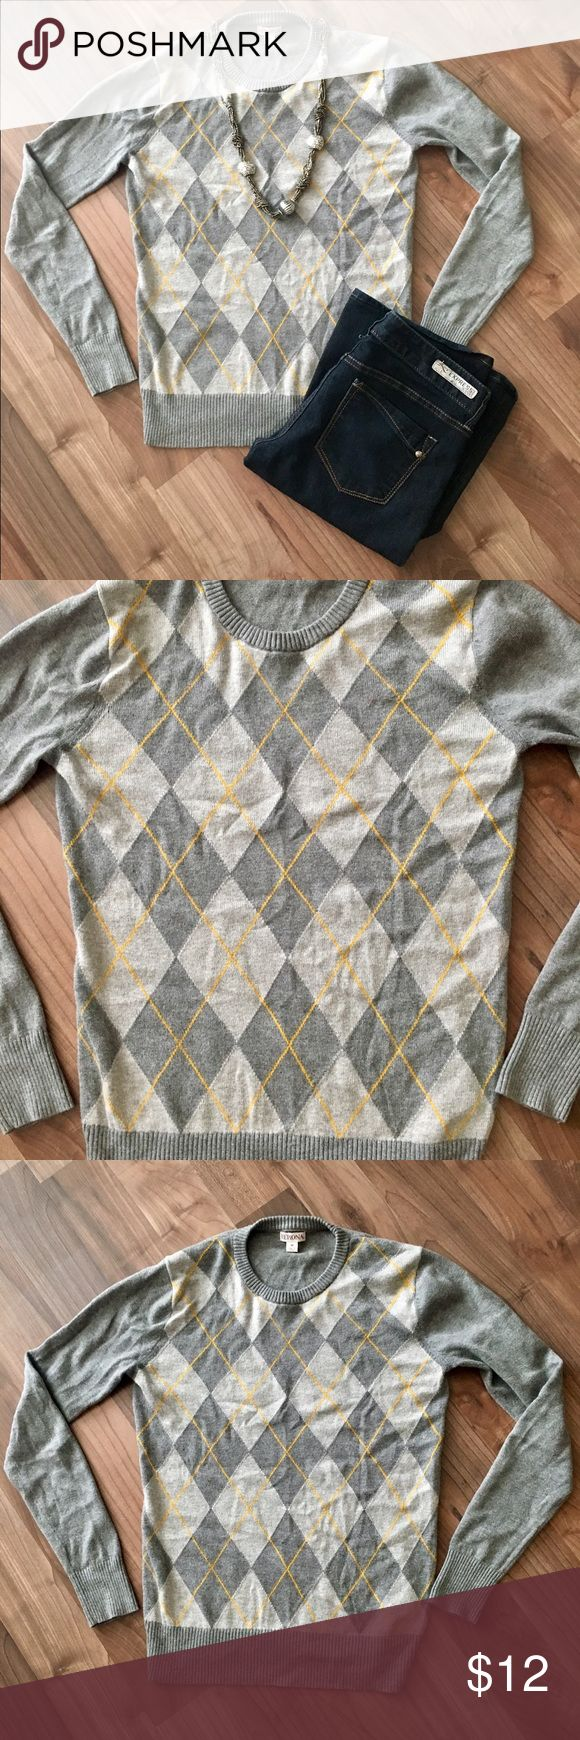 Size M Argyle Sweater Merona sweater only worn once. Beautiful argyle pattern with splash of yellow for color. All accessories shown are also available, so check out my closet! 15% off bundle with purchase of two or more items. ♥️ Merona Sweaters Crew & Scoop Necks